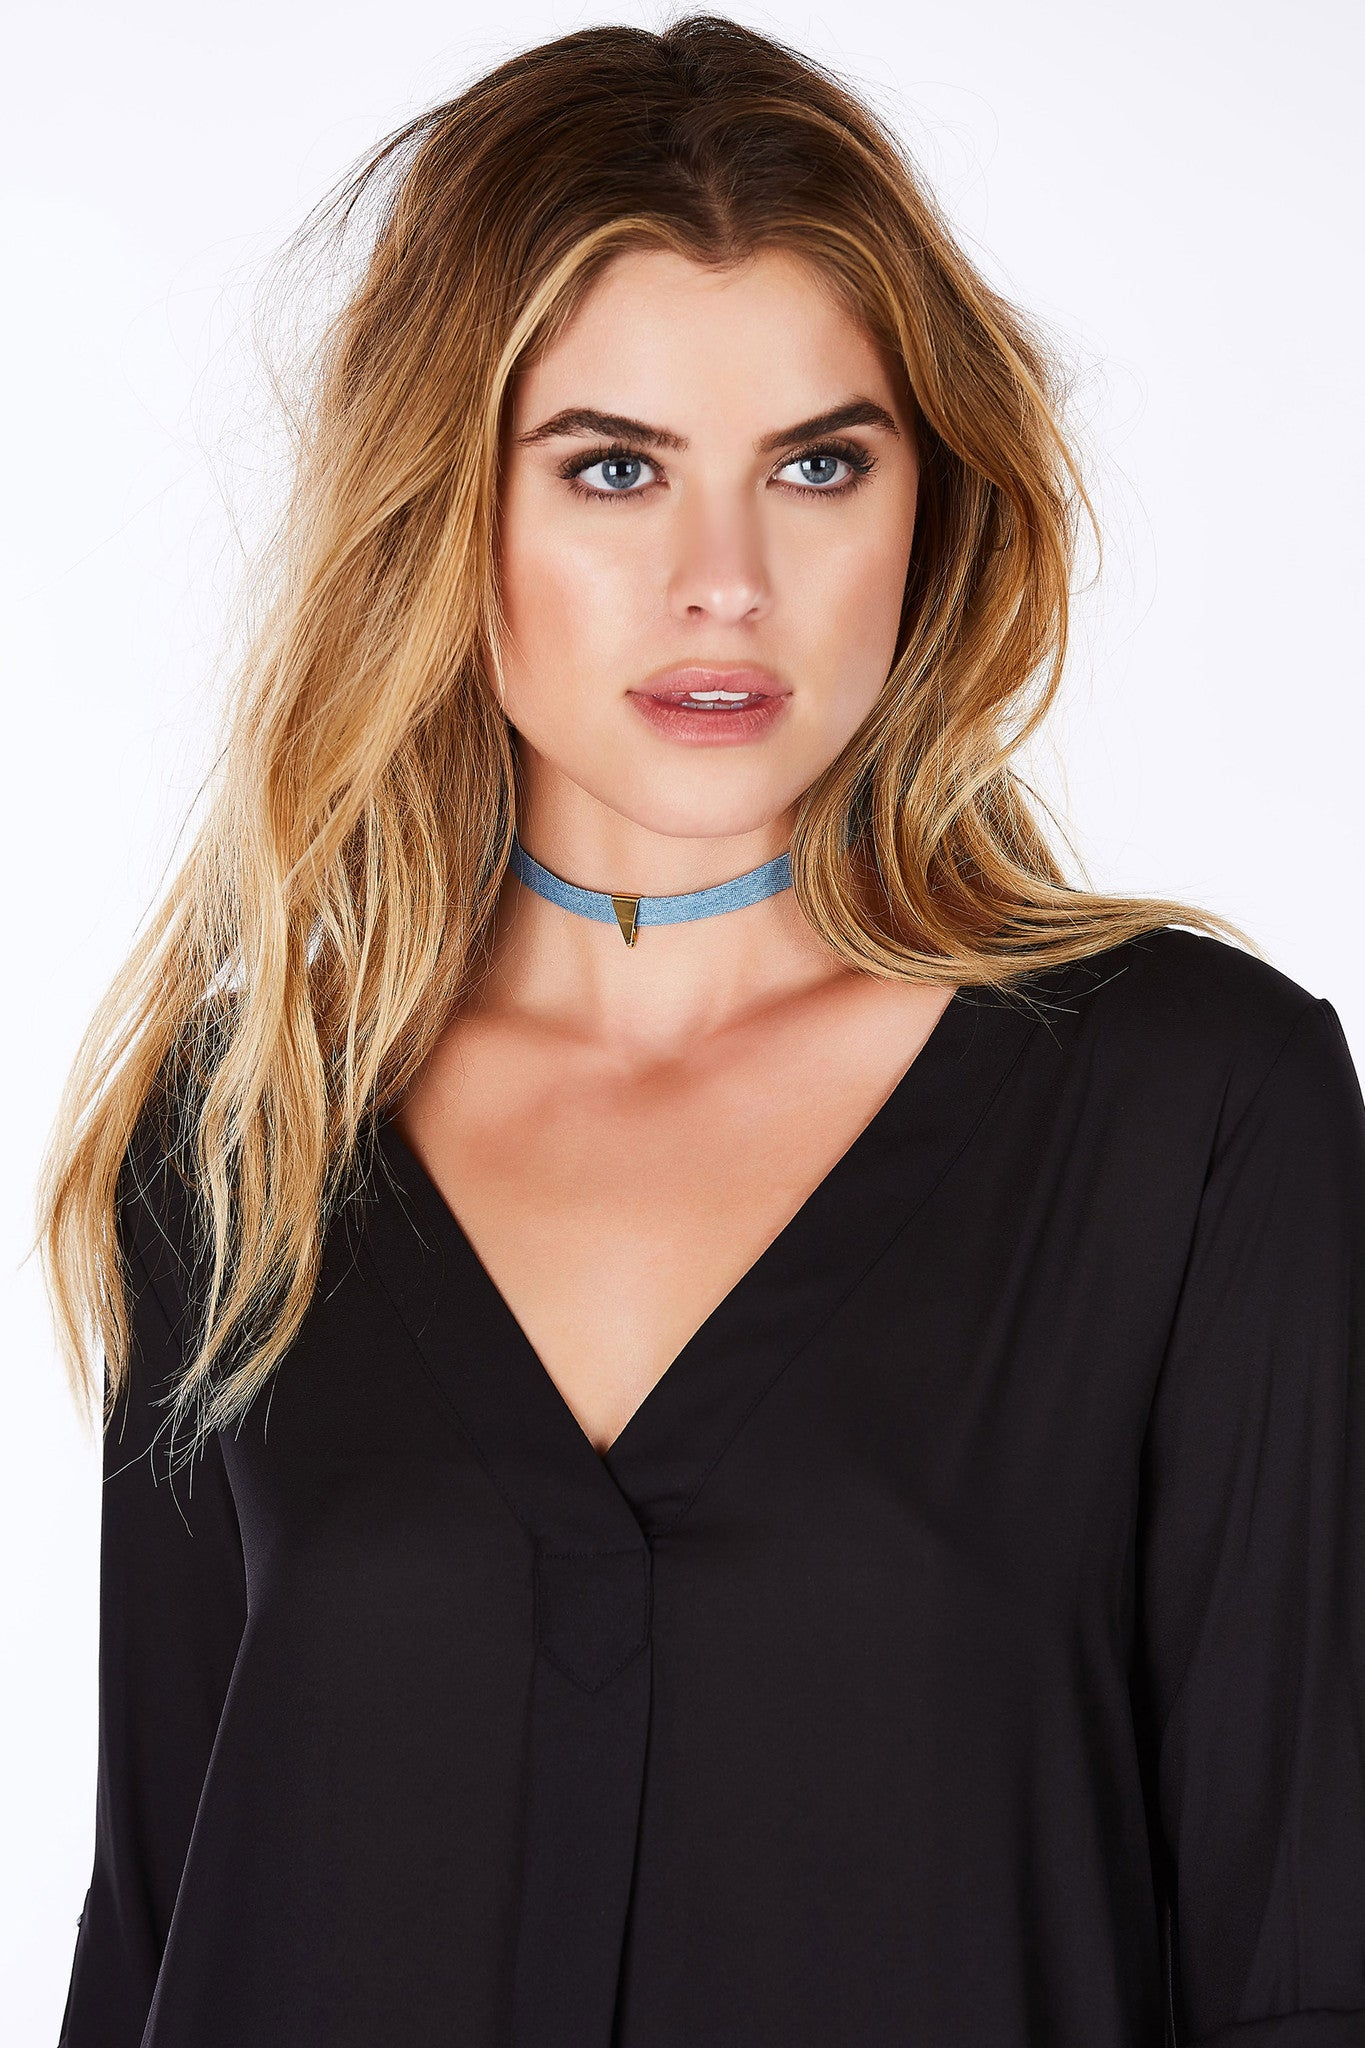 Embrace the choker trend with this amazing choker necklace. Chic single band with a gold hardware pendant for a minimalistic vibe. An easy to way to style denim on denim with your favorite chambray pieces!